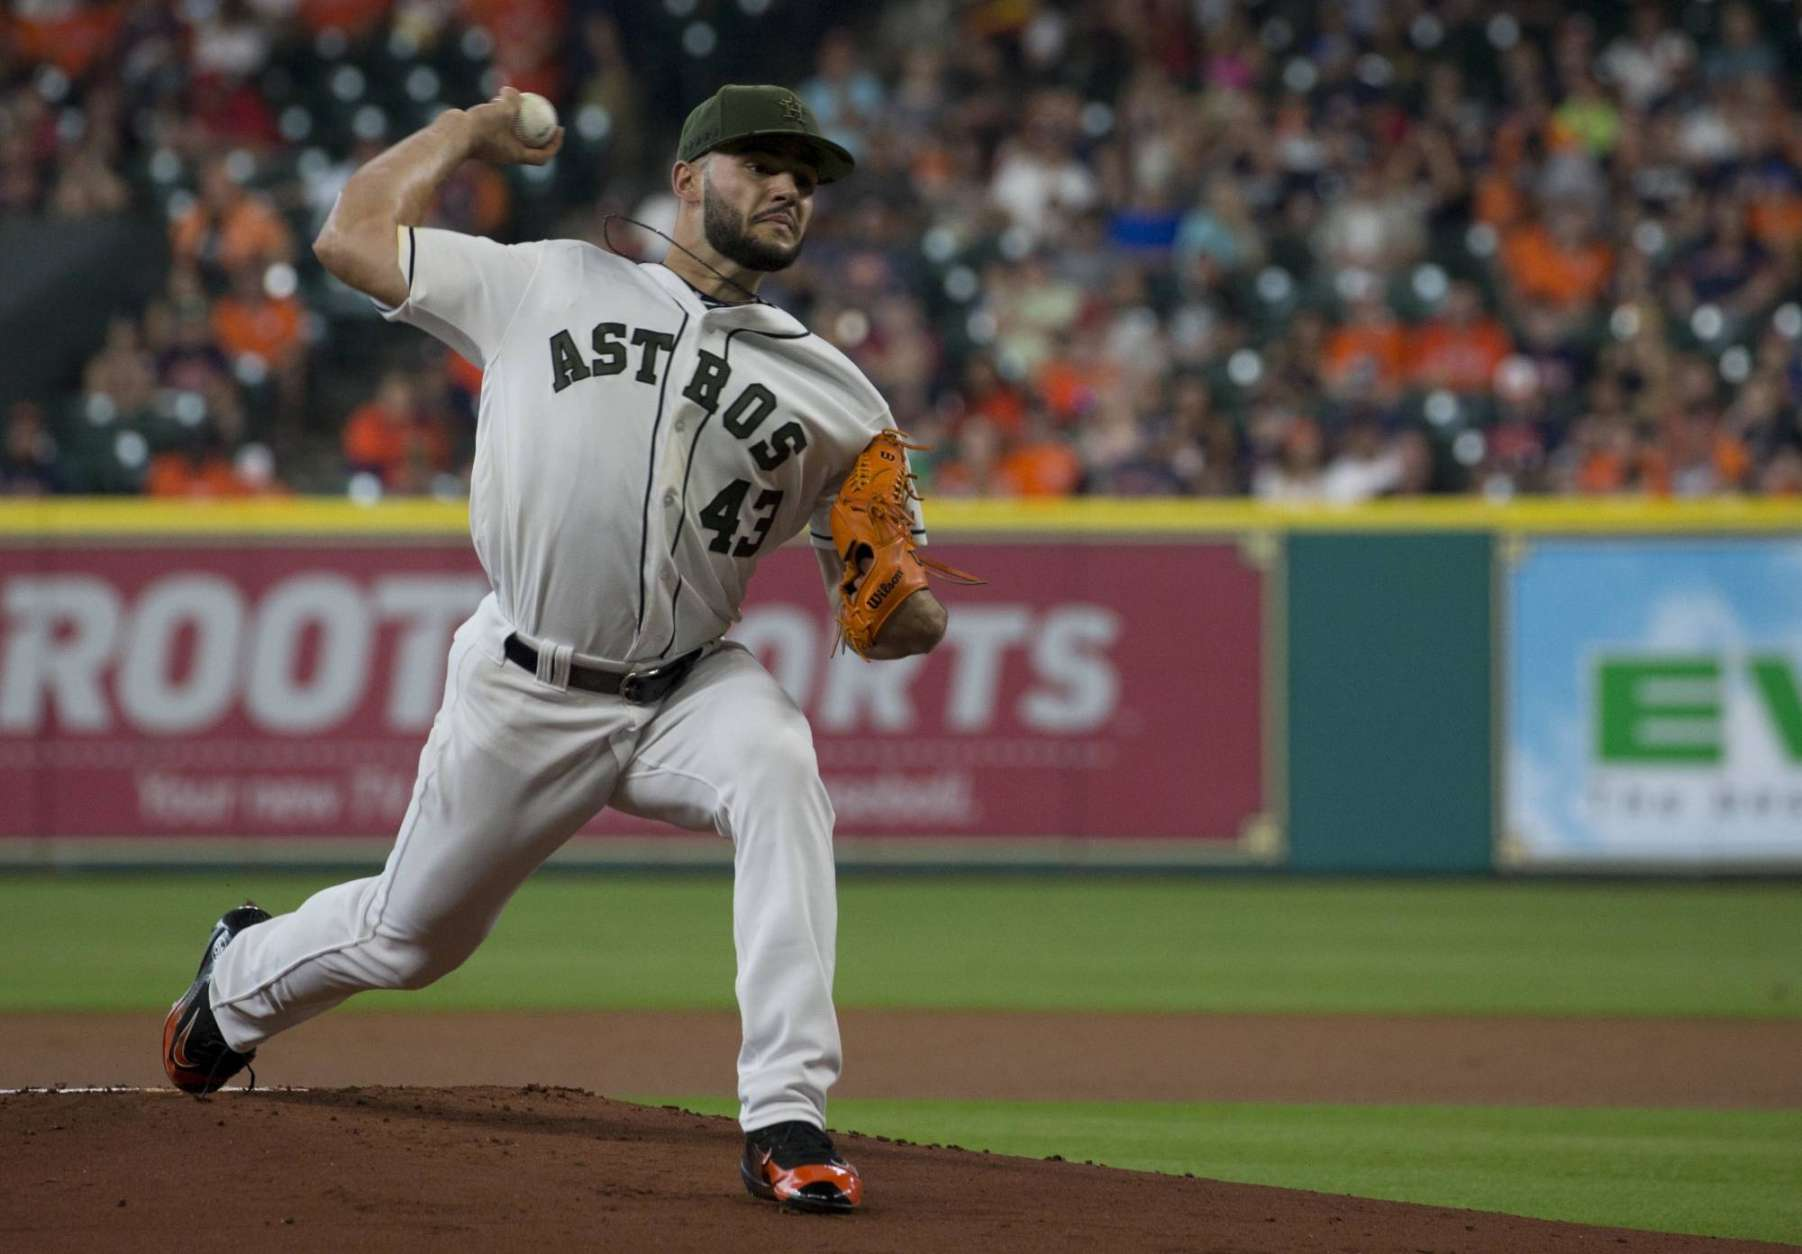 Houston Astros' pitcher Lance McCullers Jr. delivers a pitch against the Baltimore Orioles in the first inning of a baseball game Sunday, May 28, 2017 in Houston. (AP Photo/Richard Carson)